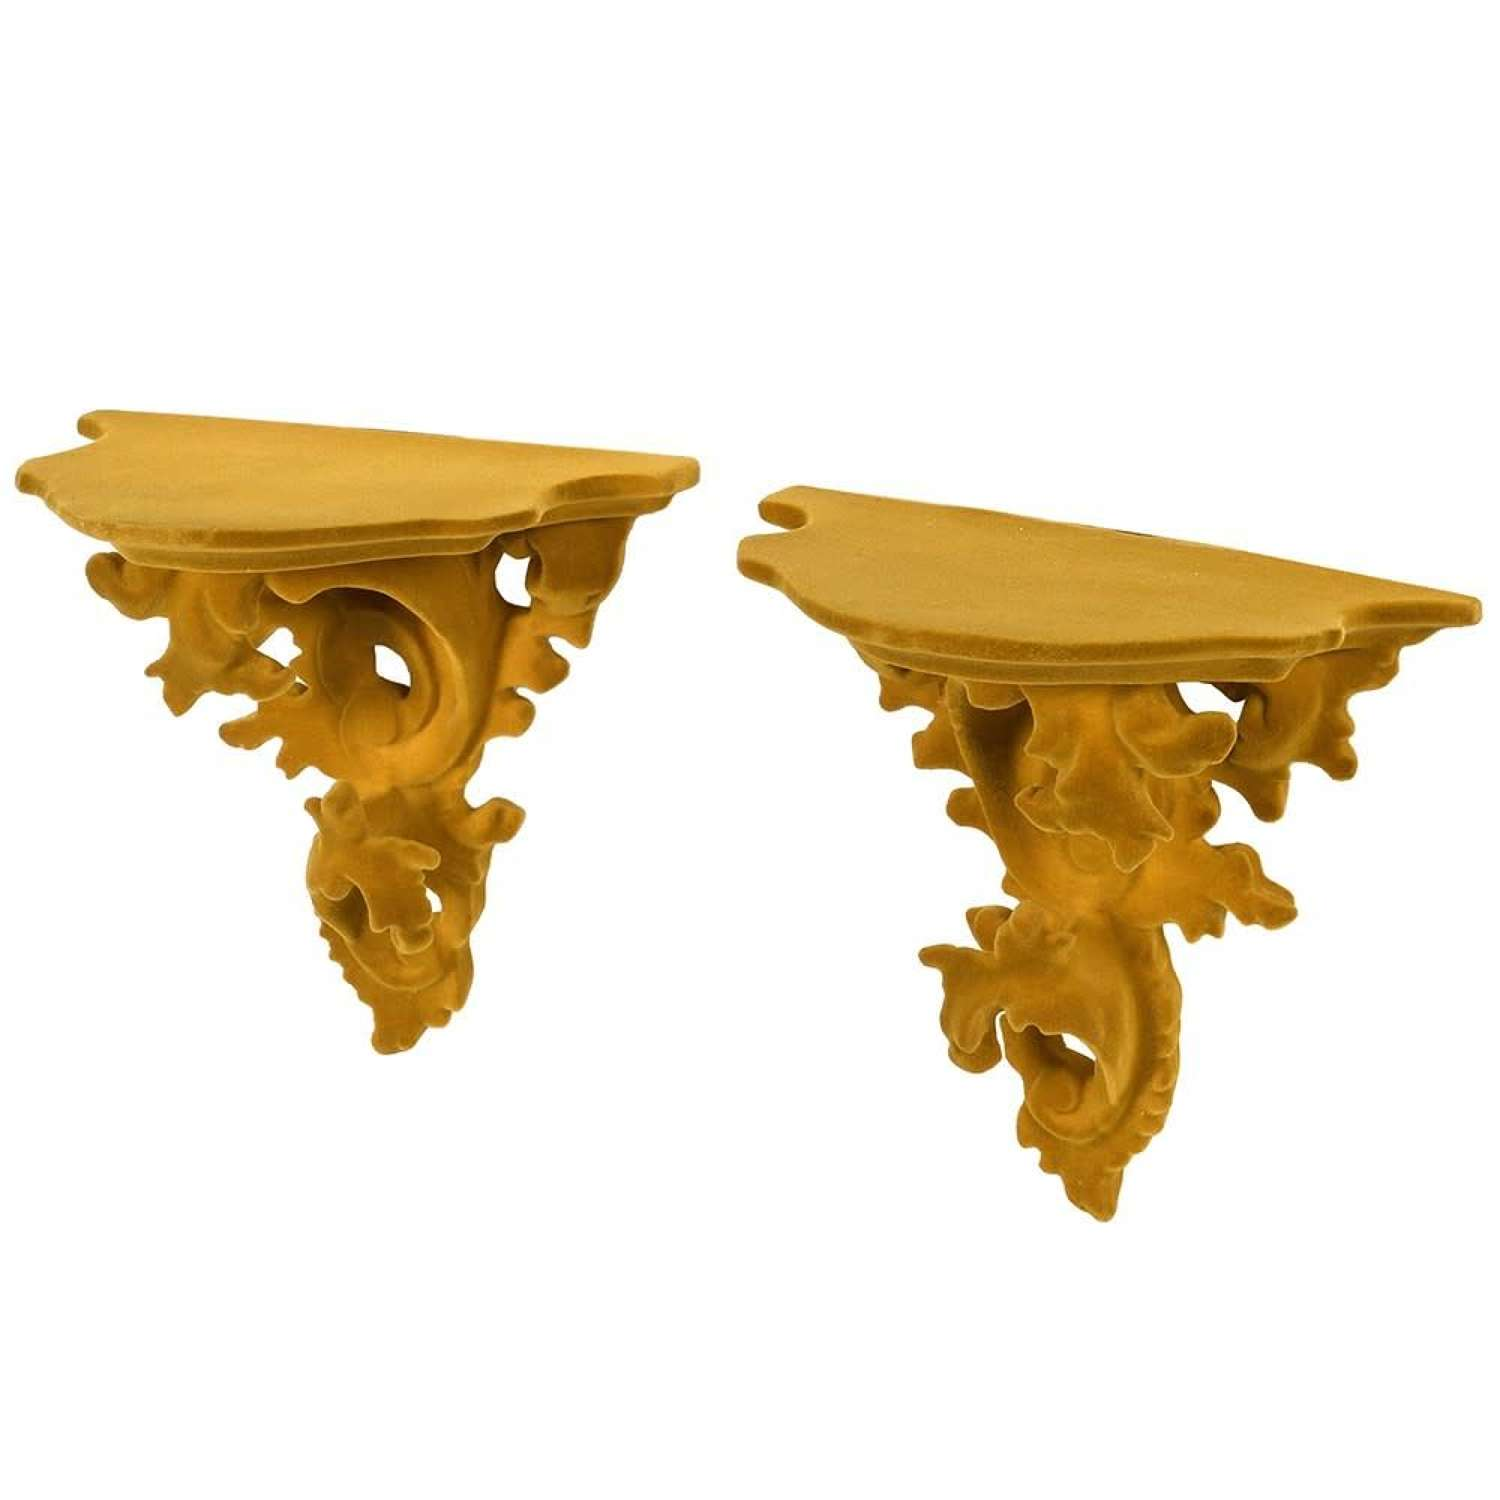 Pair of Yellow Flock Ornate Wall Shelves